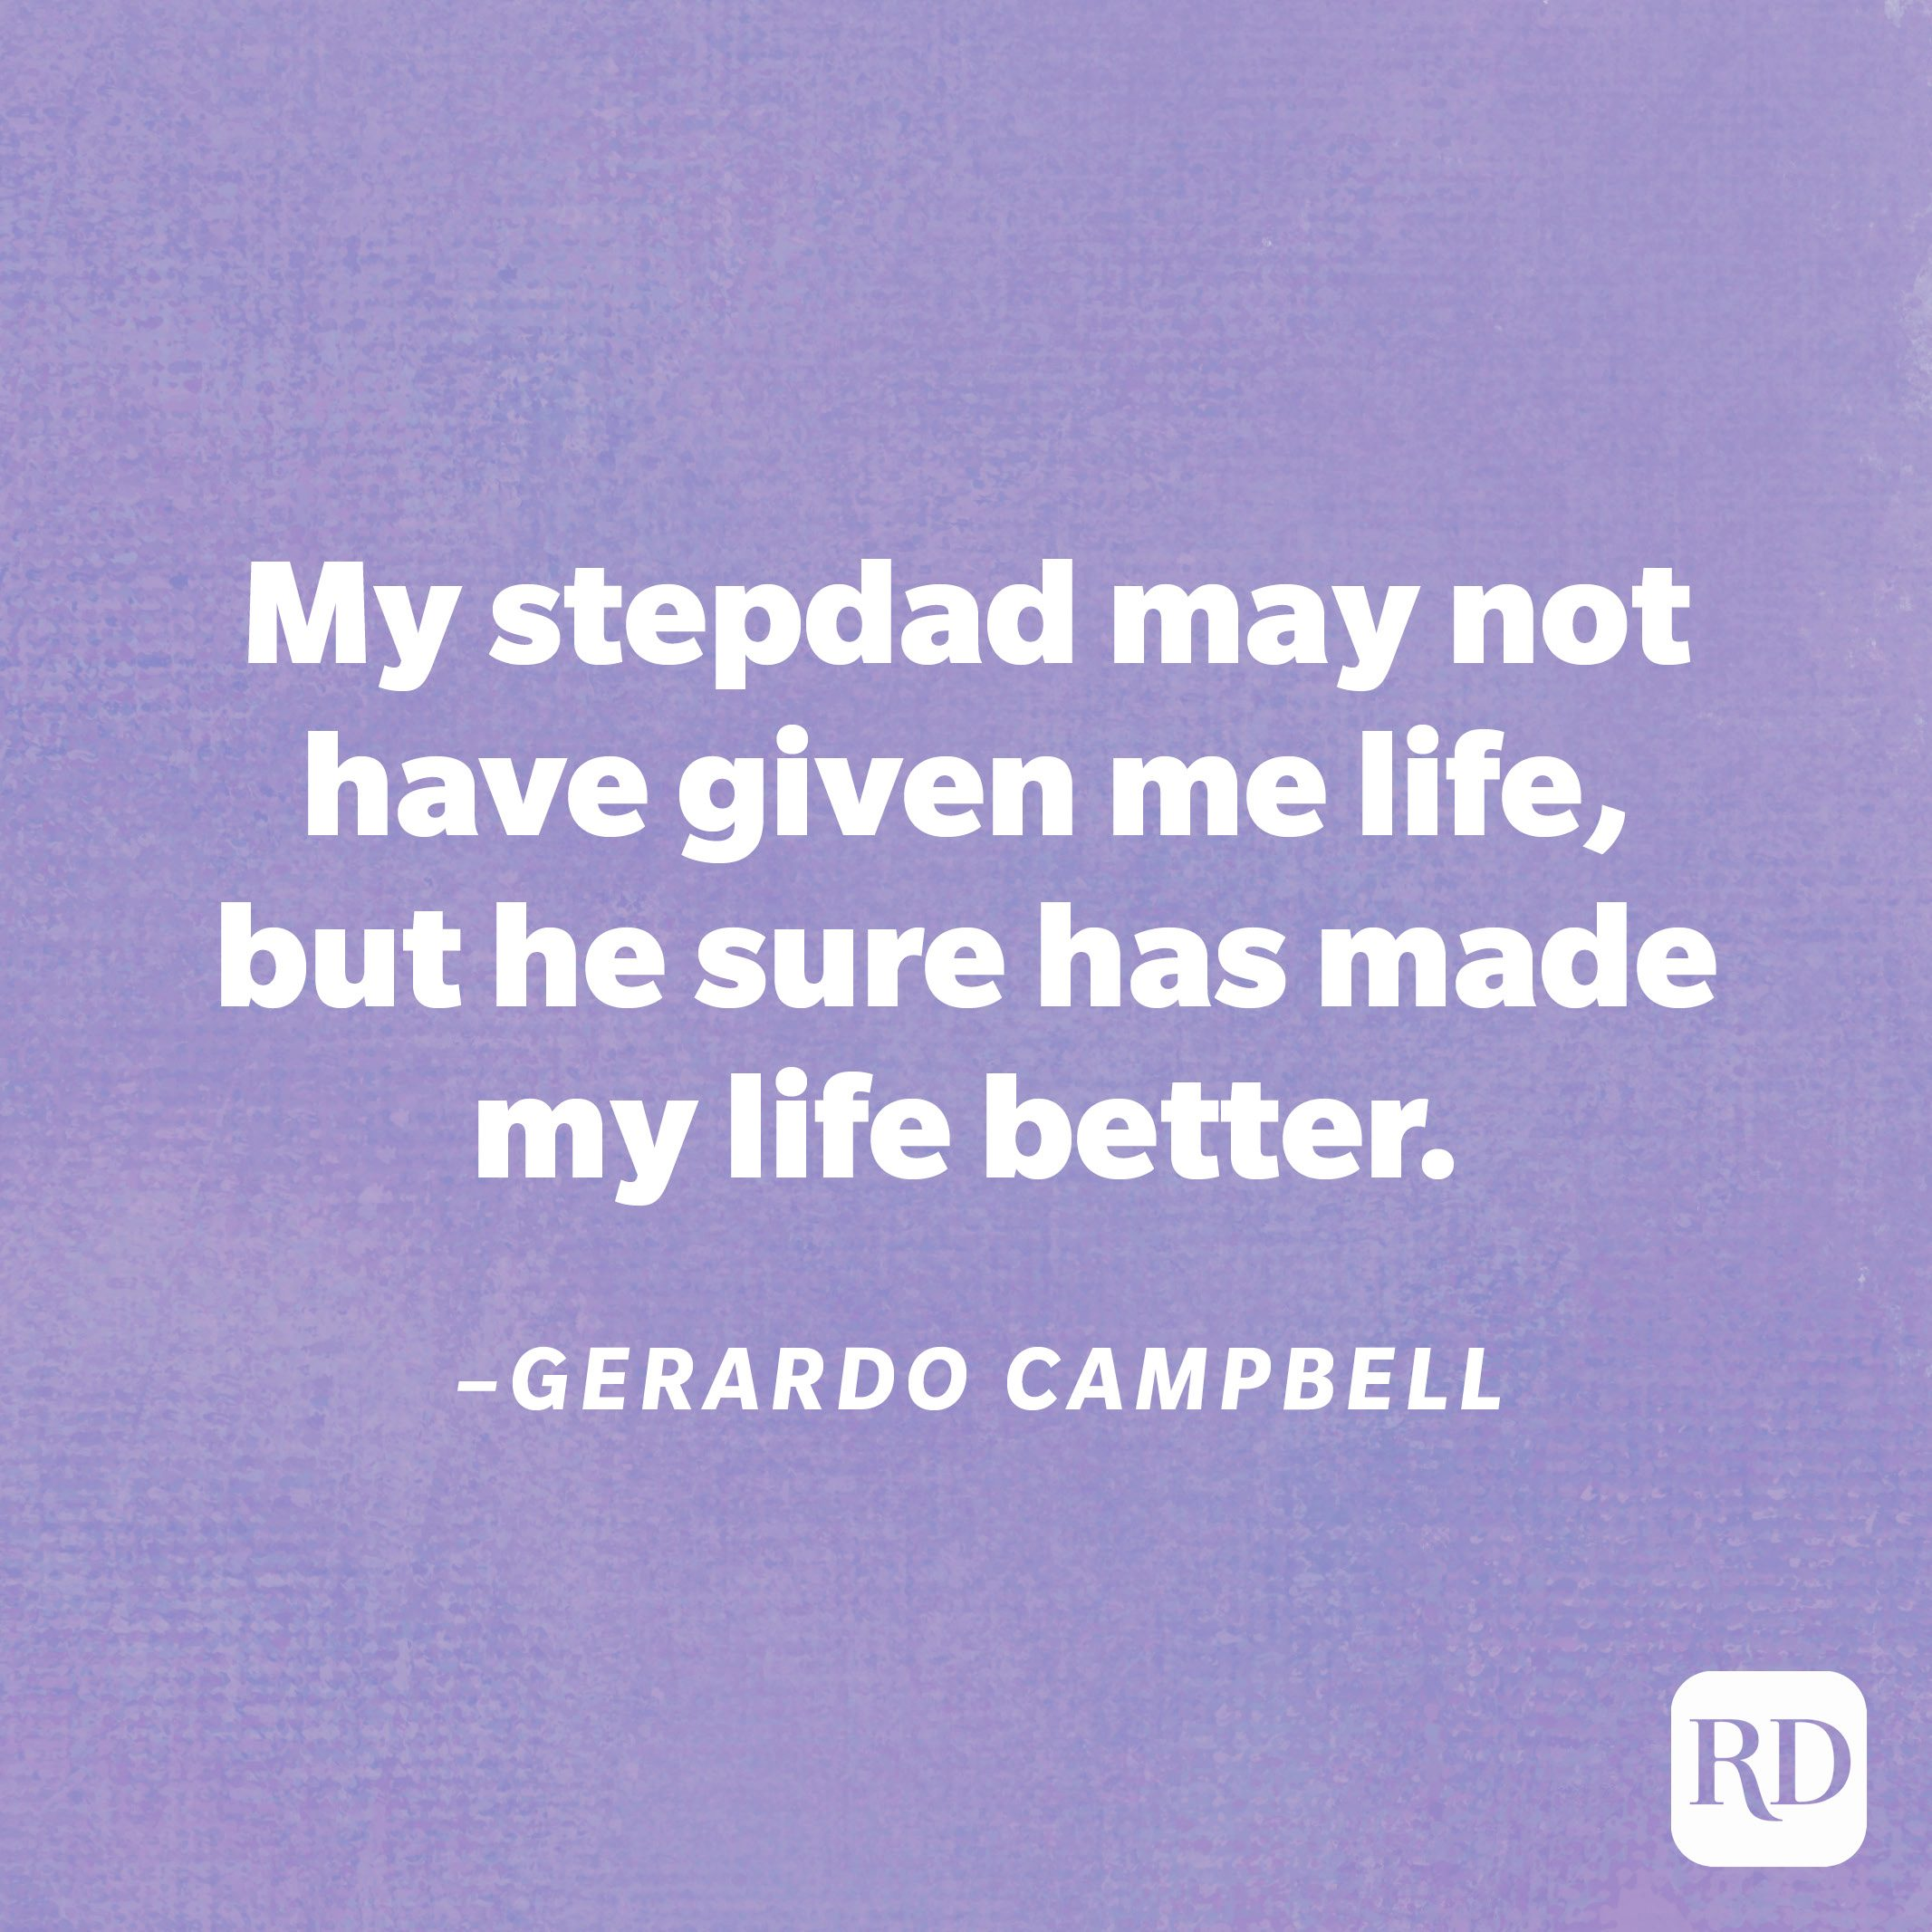 """""""My stepdad may not have given me life, but he sure has made my life better.""""—Gerardo Campbell"""